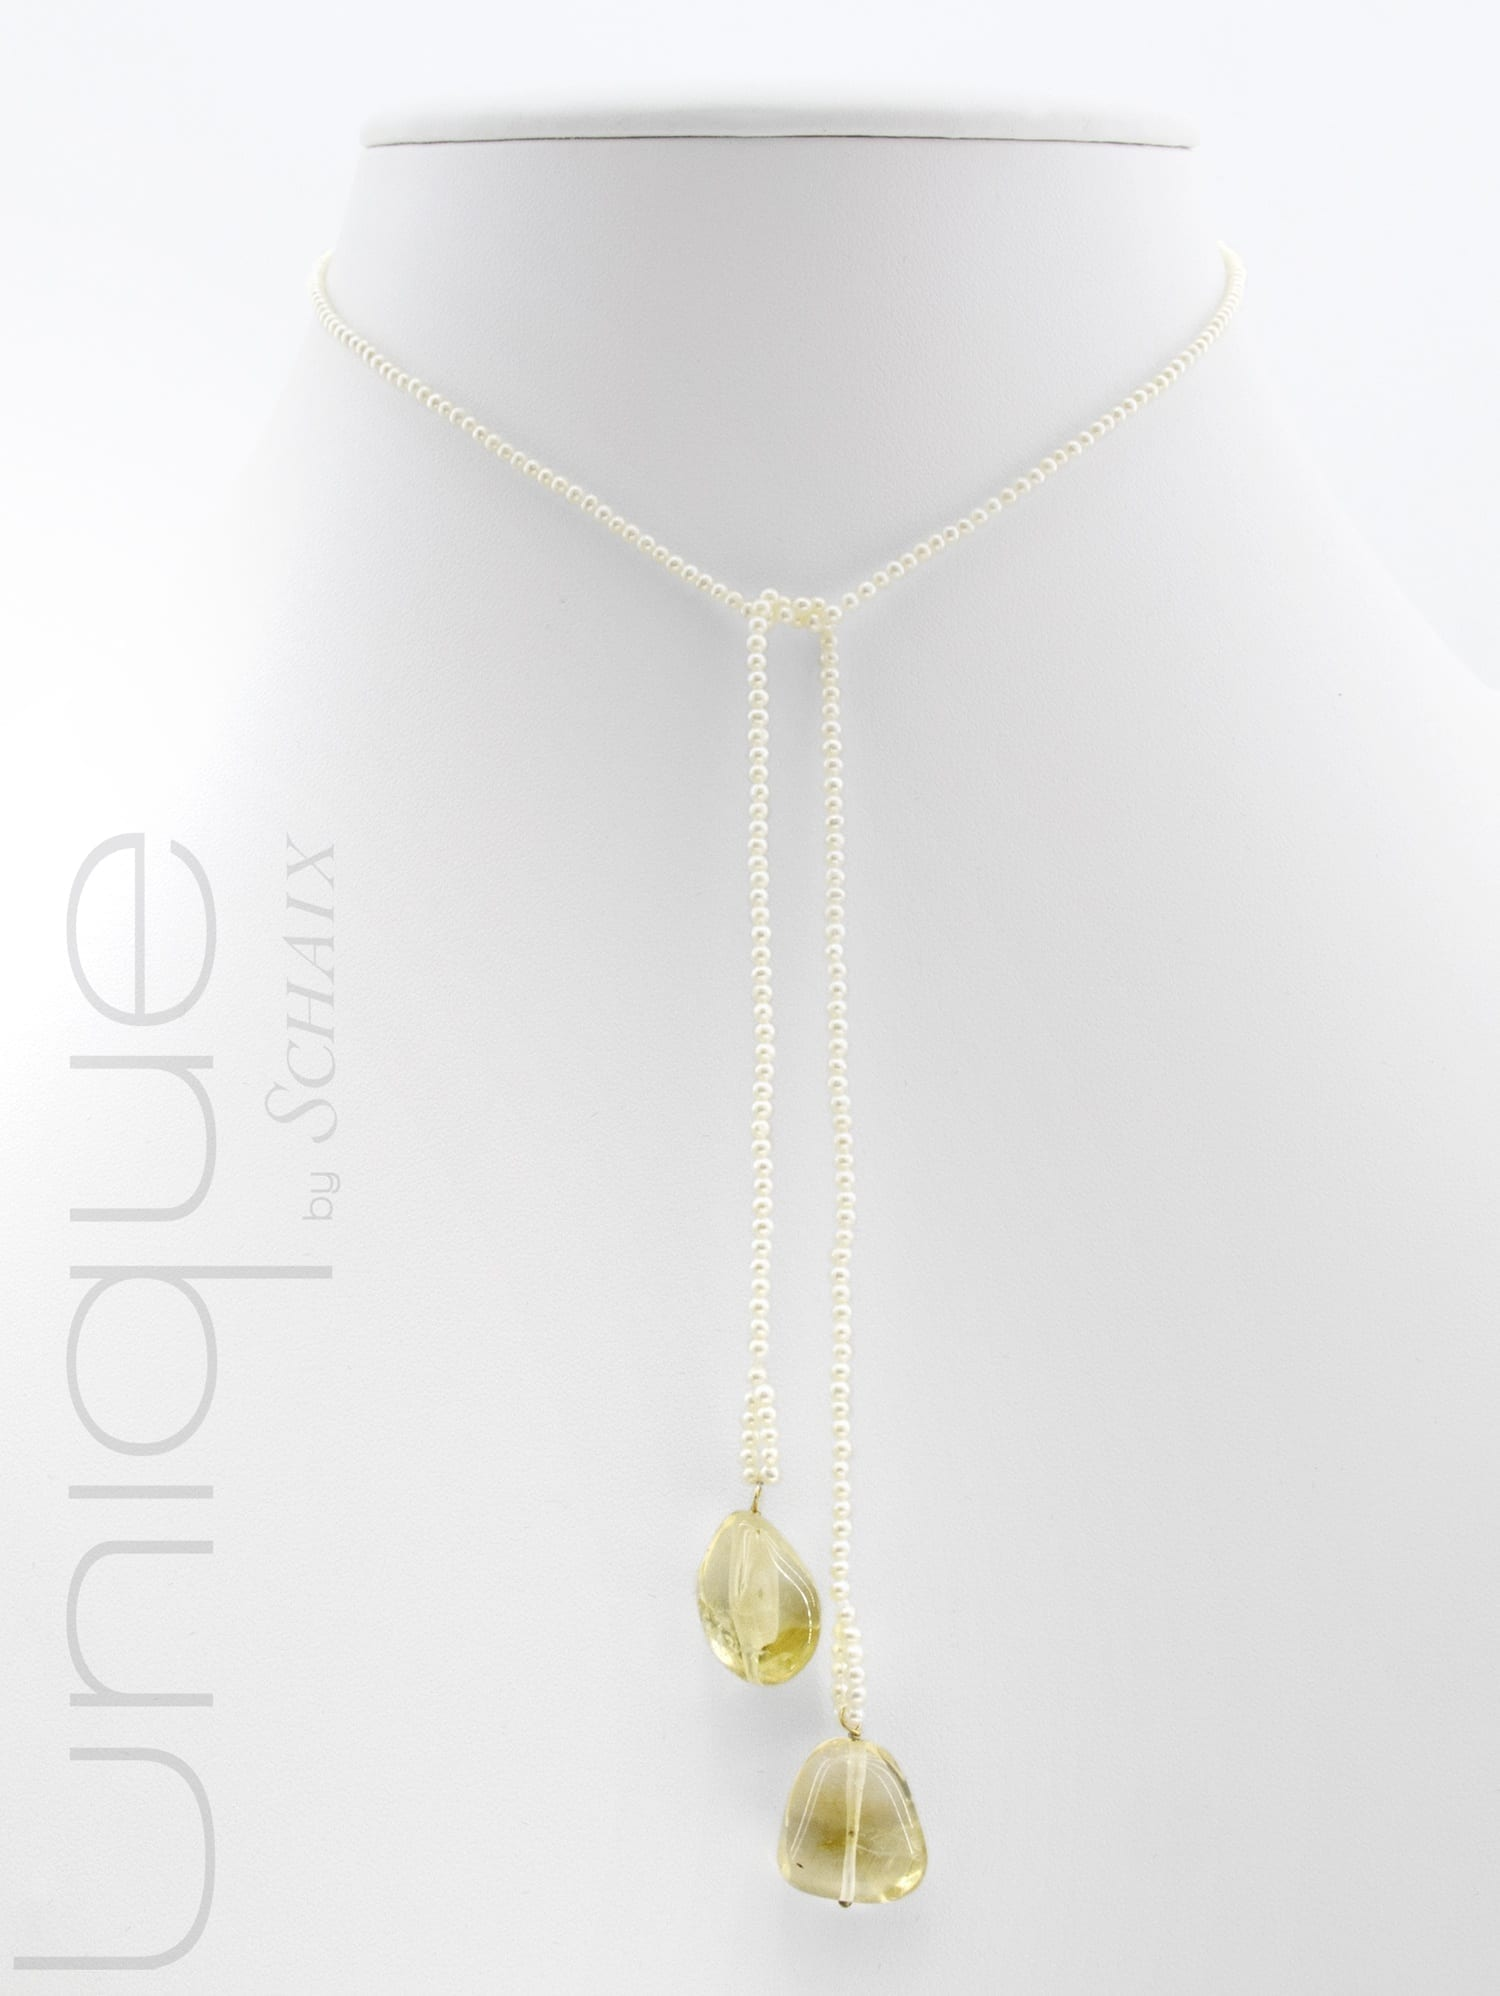 Knotting pearl necklace made of natural freshwater pearls, with two baroque pierced citrine drops built on 18 carat yellow gold.